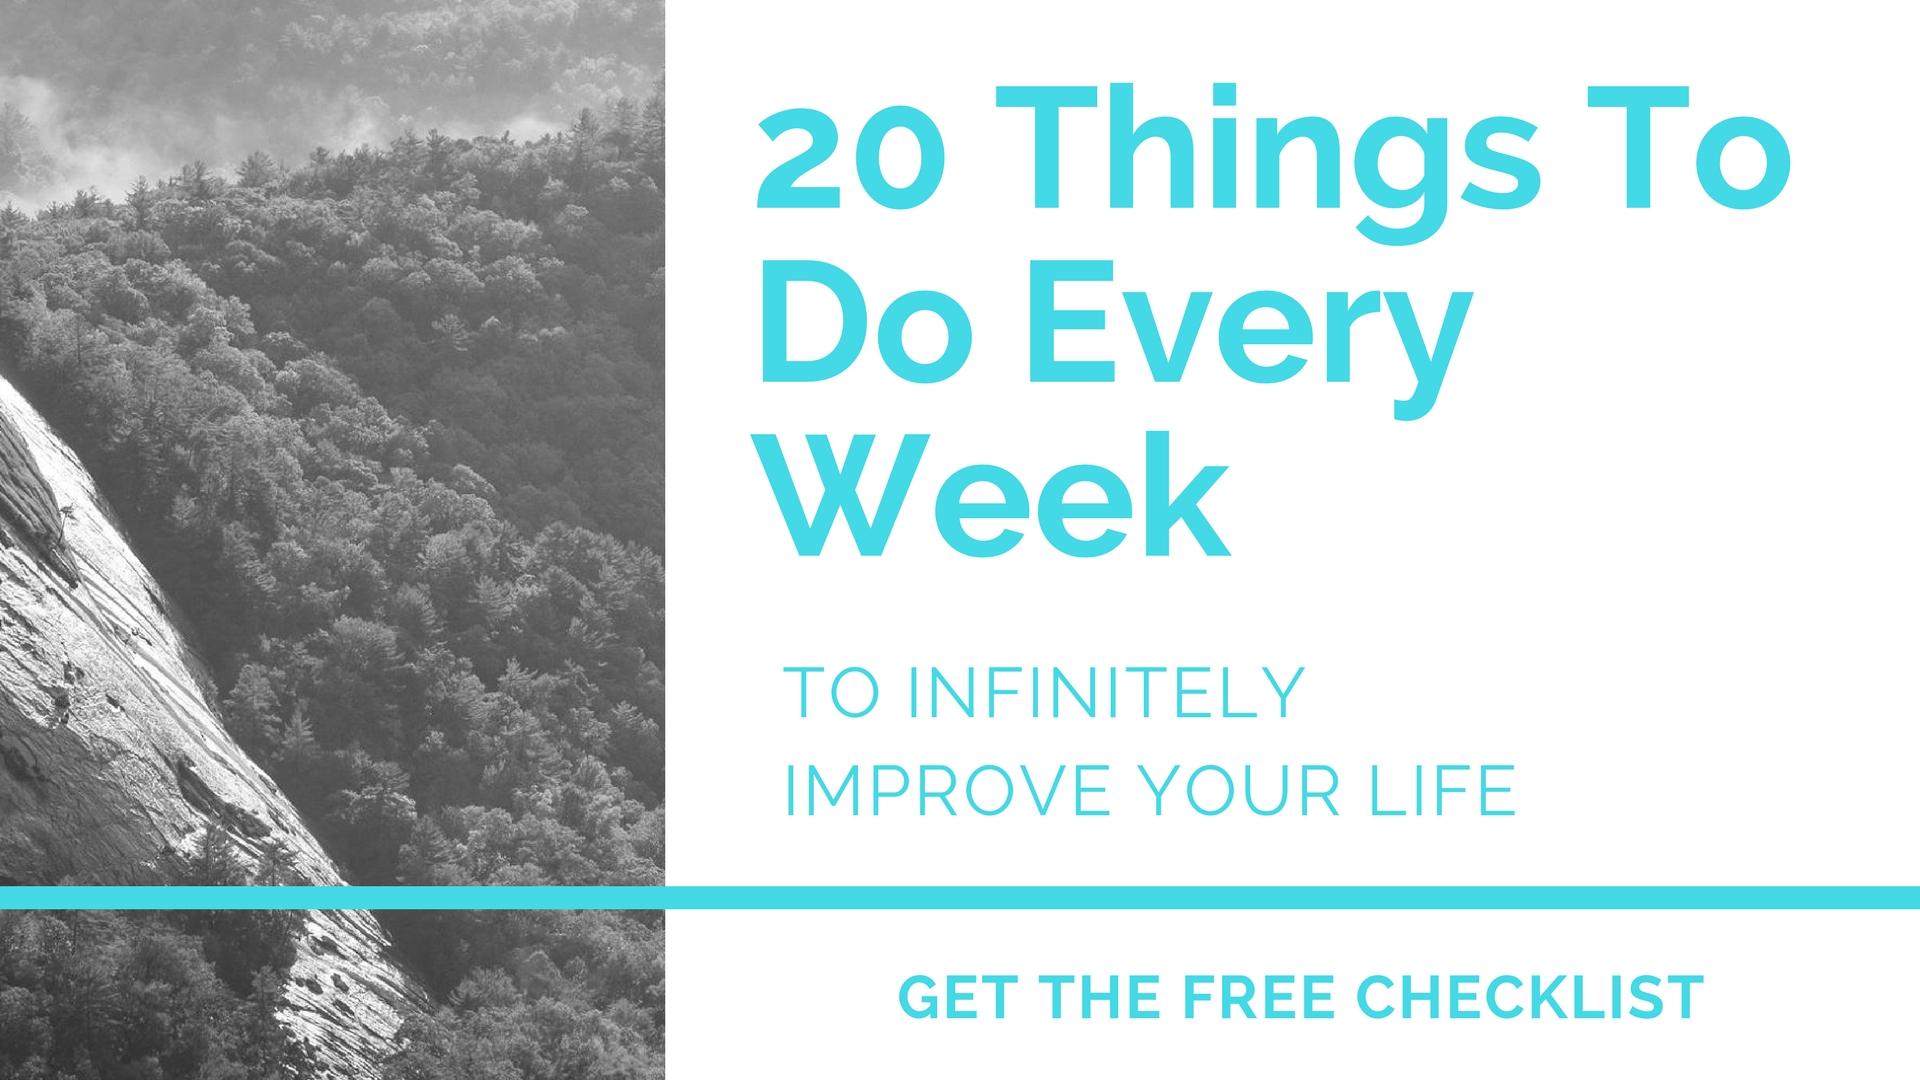 20 THINGS TO DO EVERY WEEK